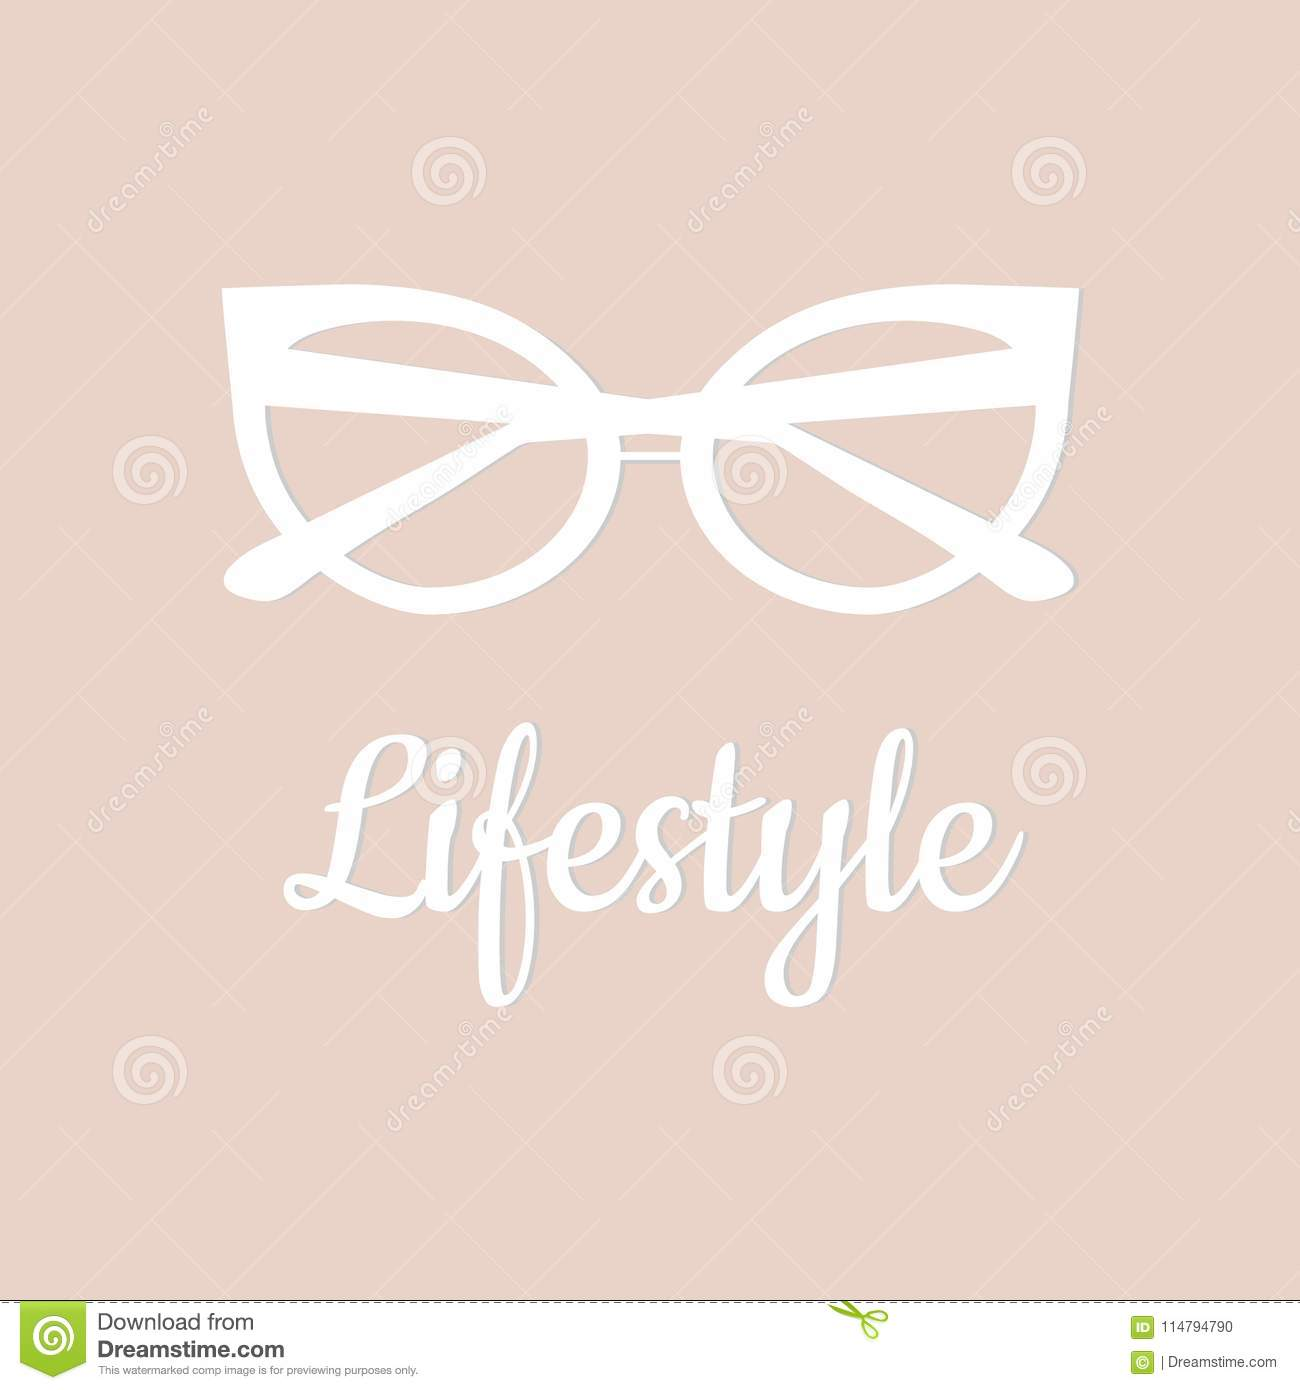 Lifestyle Blog Instagram Icon Template Cover For Lifestyle Blog Stock Vector